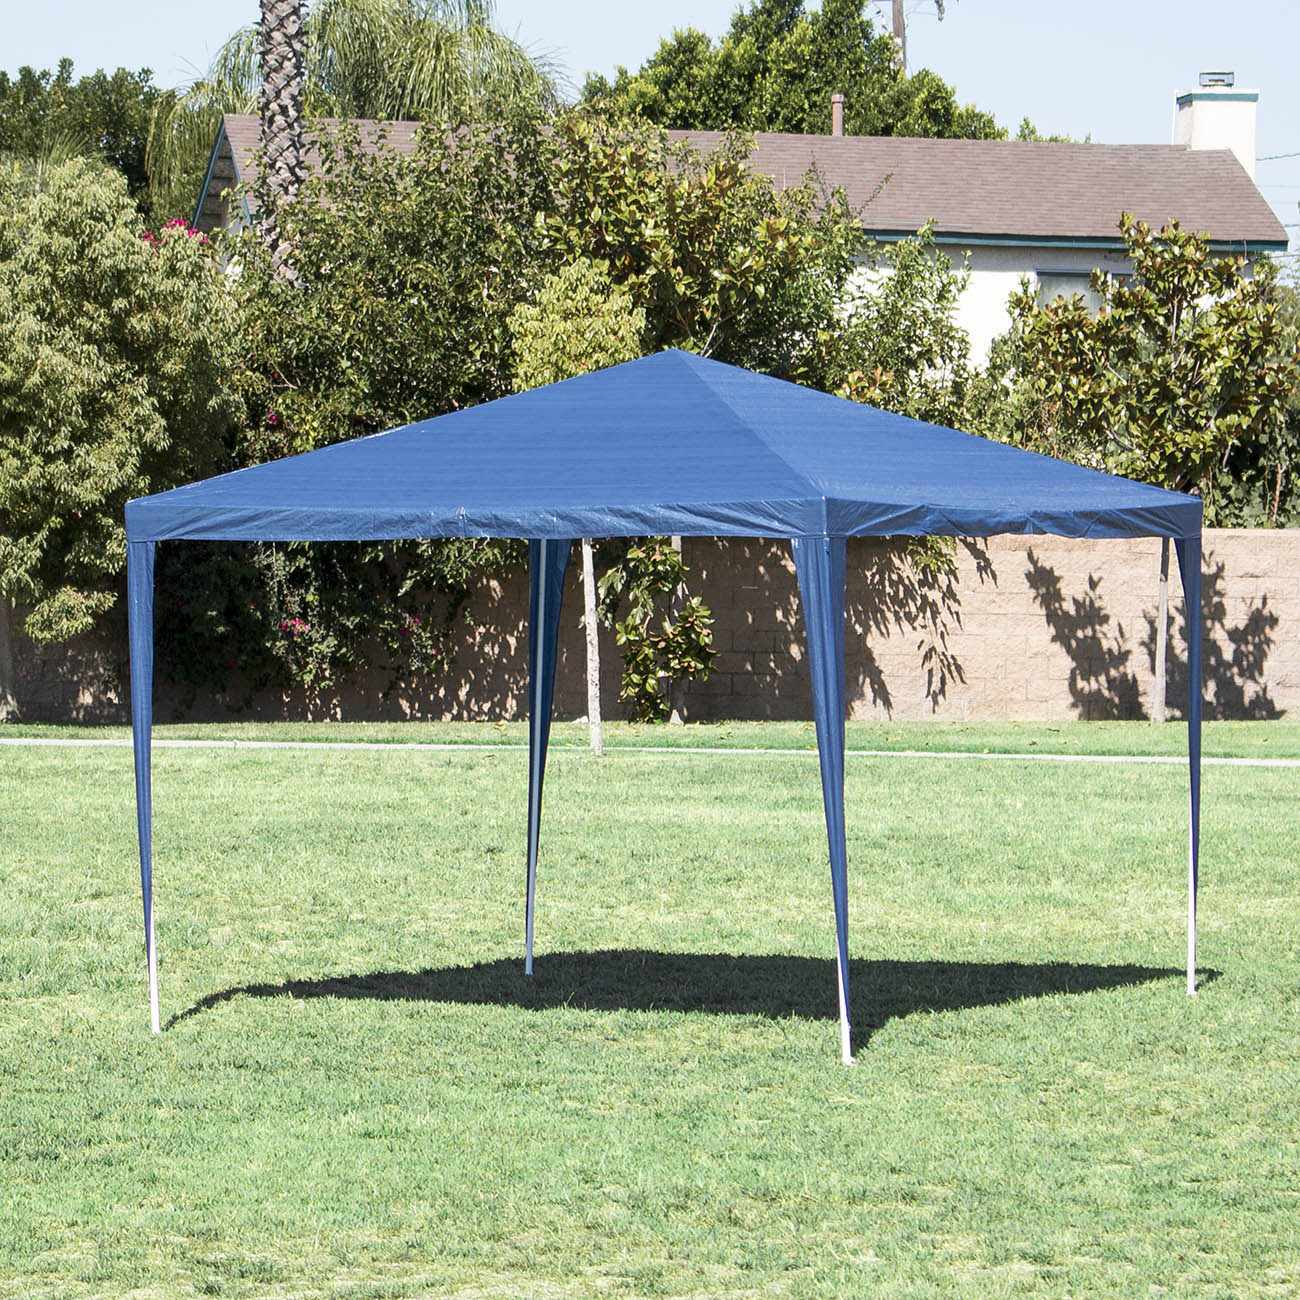 Superieur Gazebo Canopy Wedding Party Tent Blue Pop Up Portable Shade 10x10 Parties  Shade